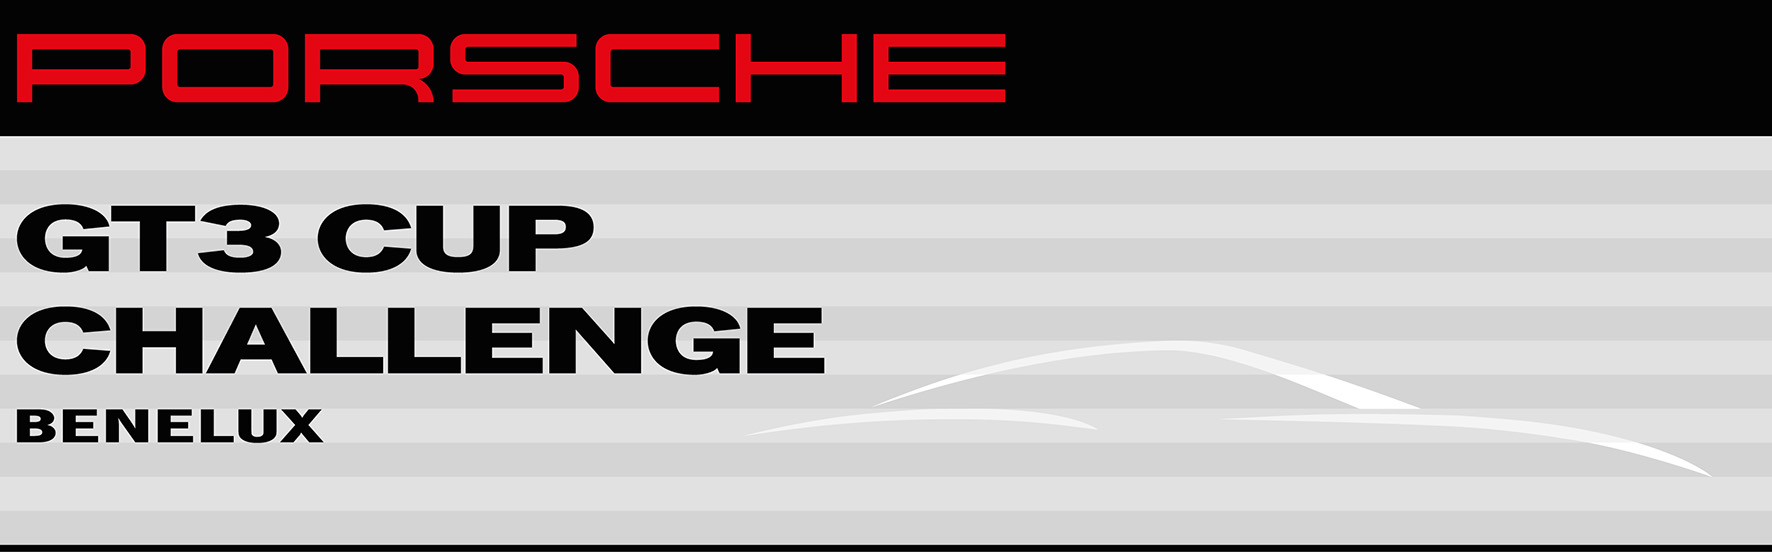 Gt3ccb Logo Porsche Everyday Dedeporsches Blog